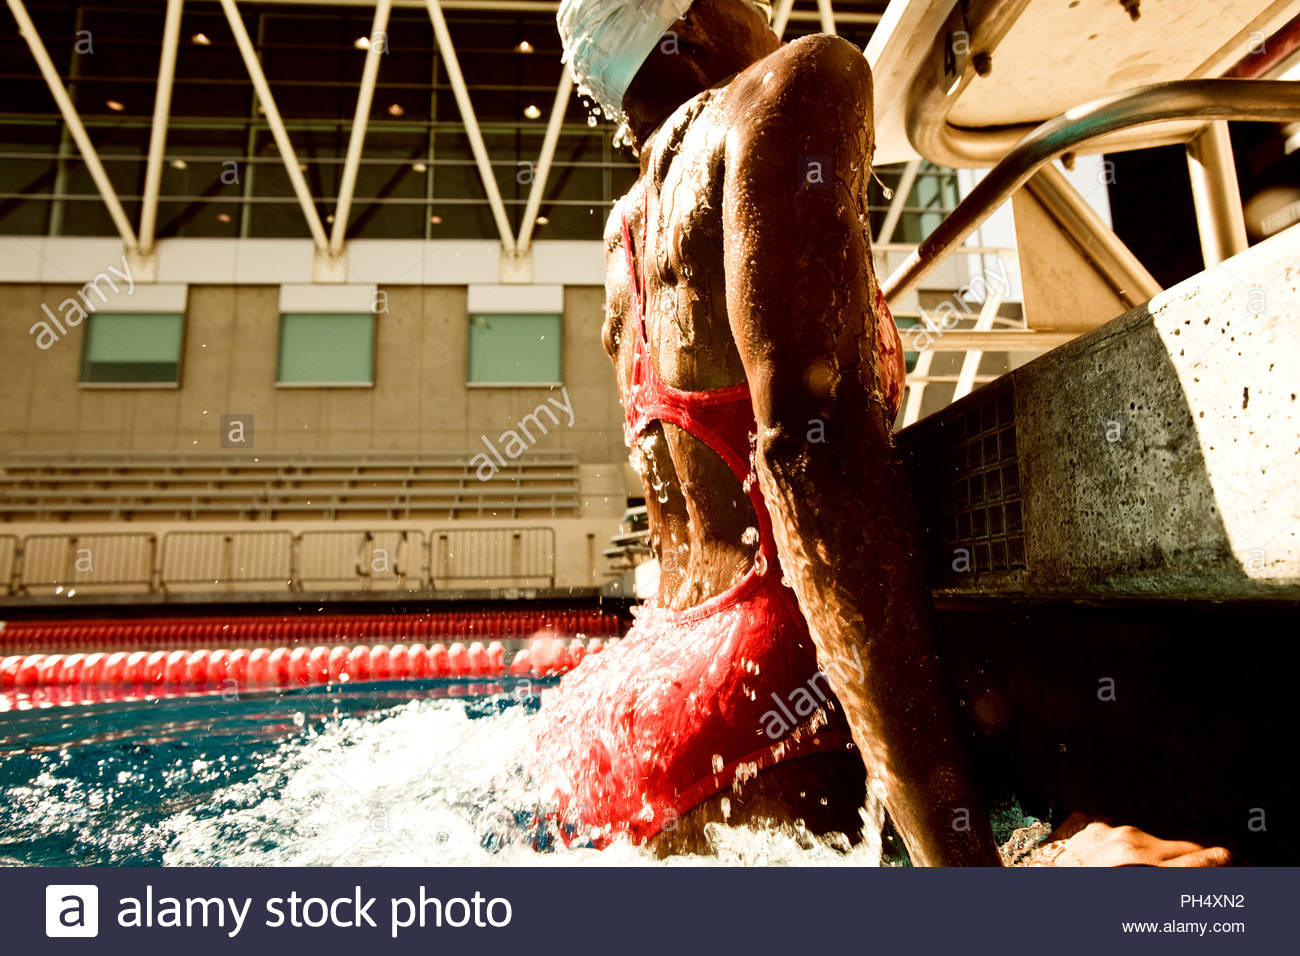 Underwater view of woman in swimming pool - Stock Image